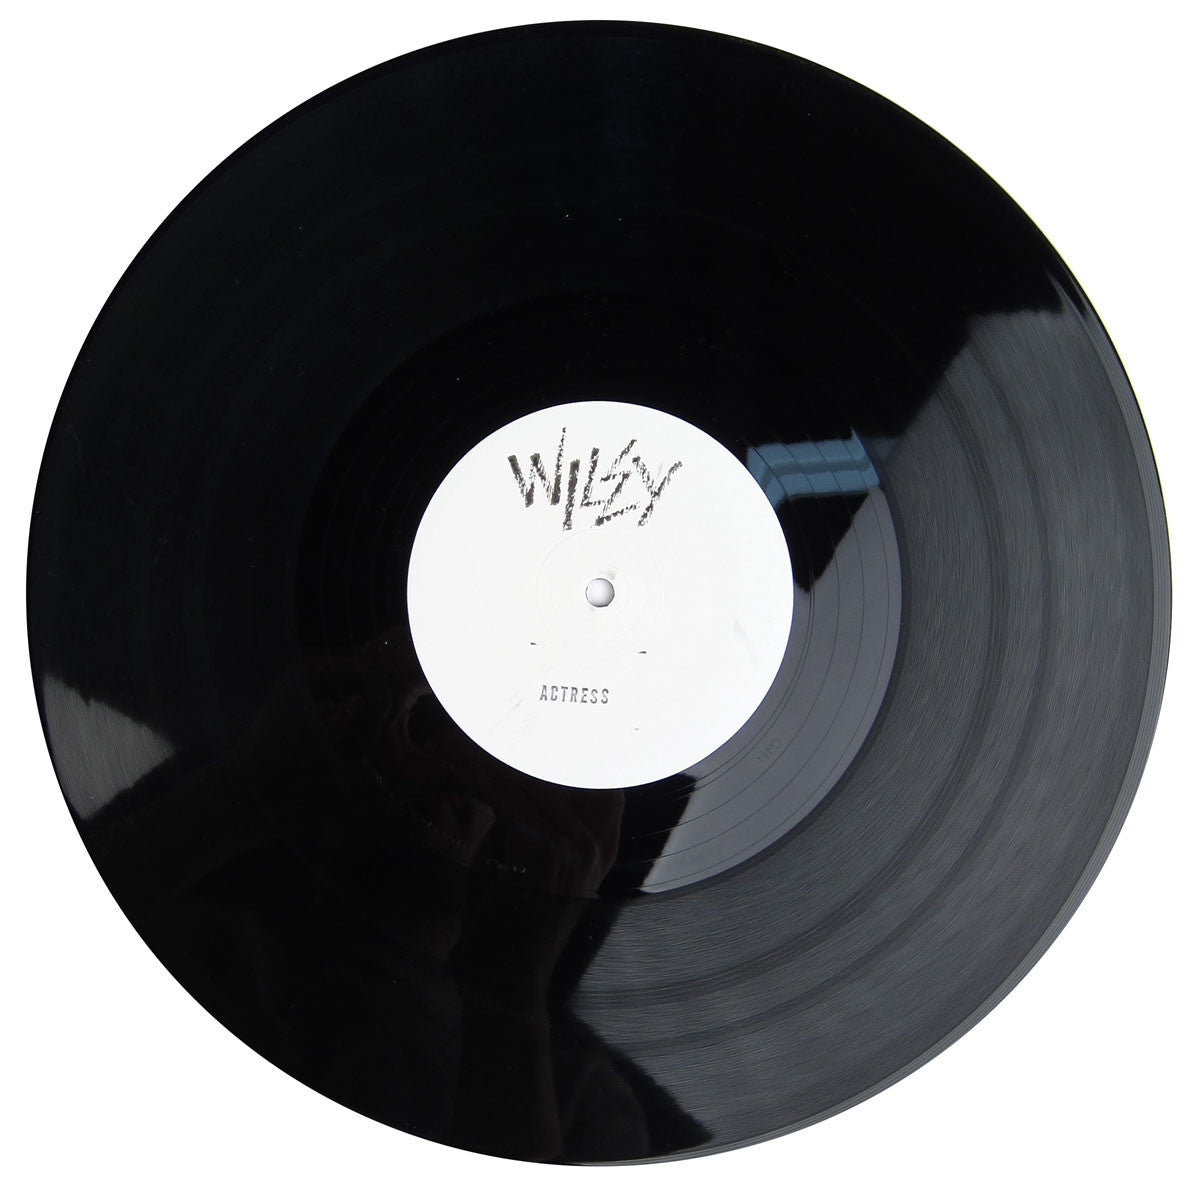 Wiley: From The Outside (Actress' Generation 4 Constellation Mix) Vinyl 12""